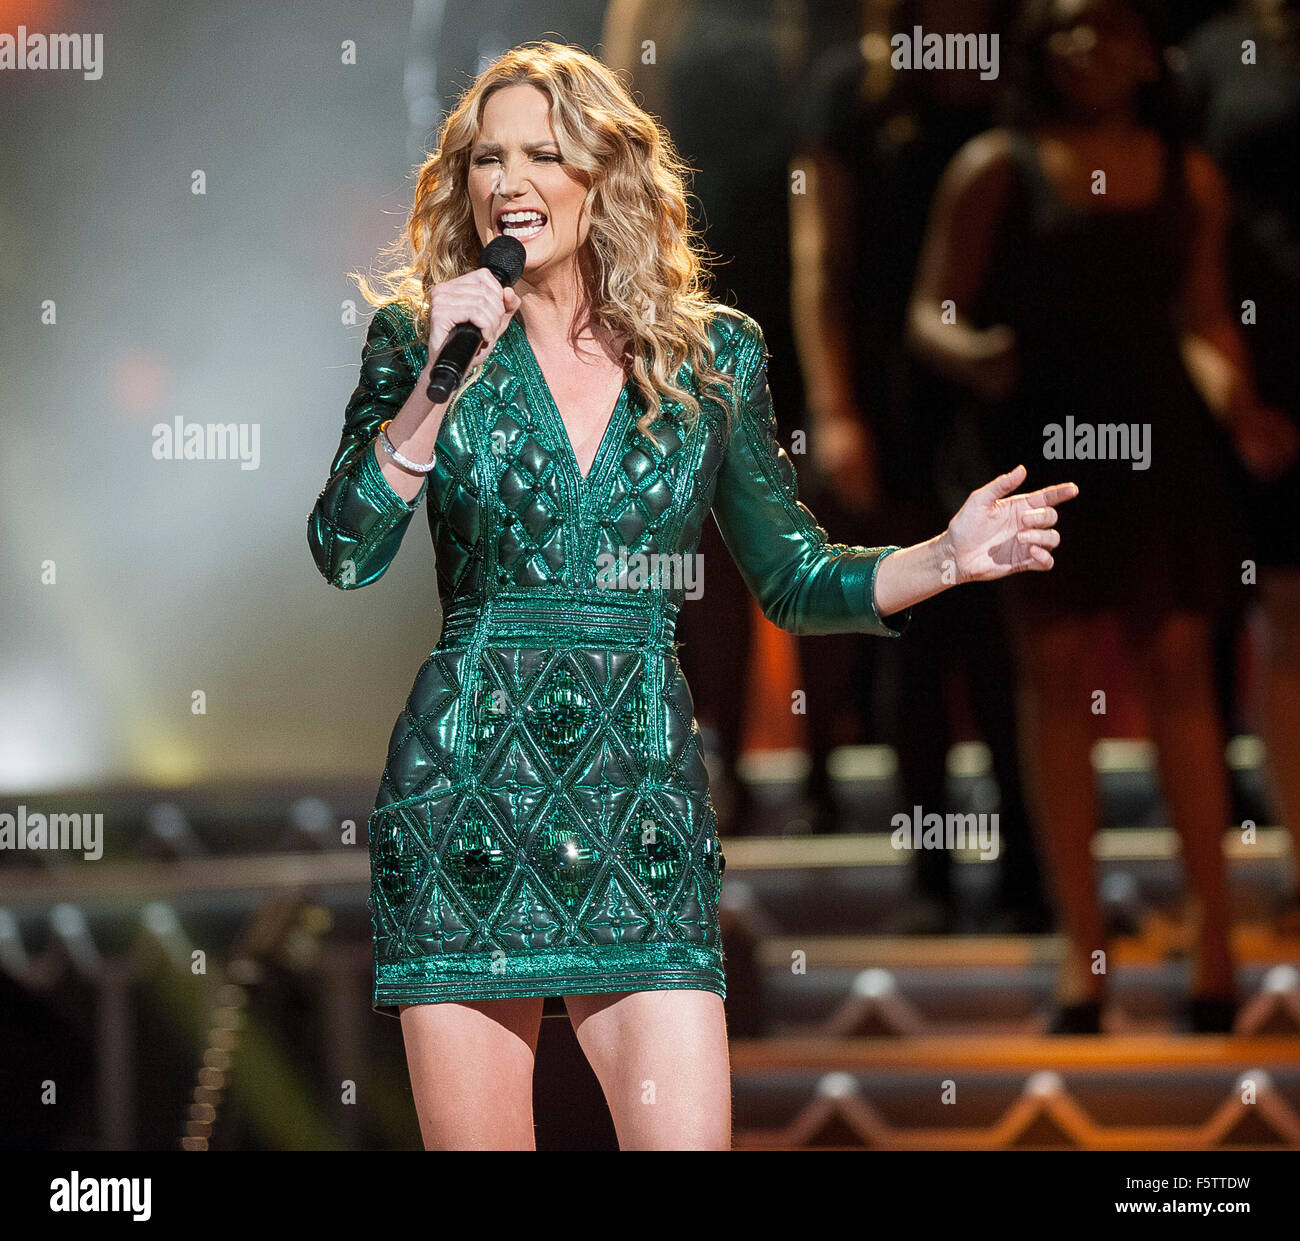 Nov. 7, 2015 - Nashville, Tennessee; USA - Singer / Host JENNIFER ...